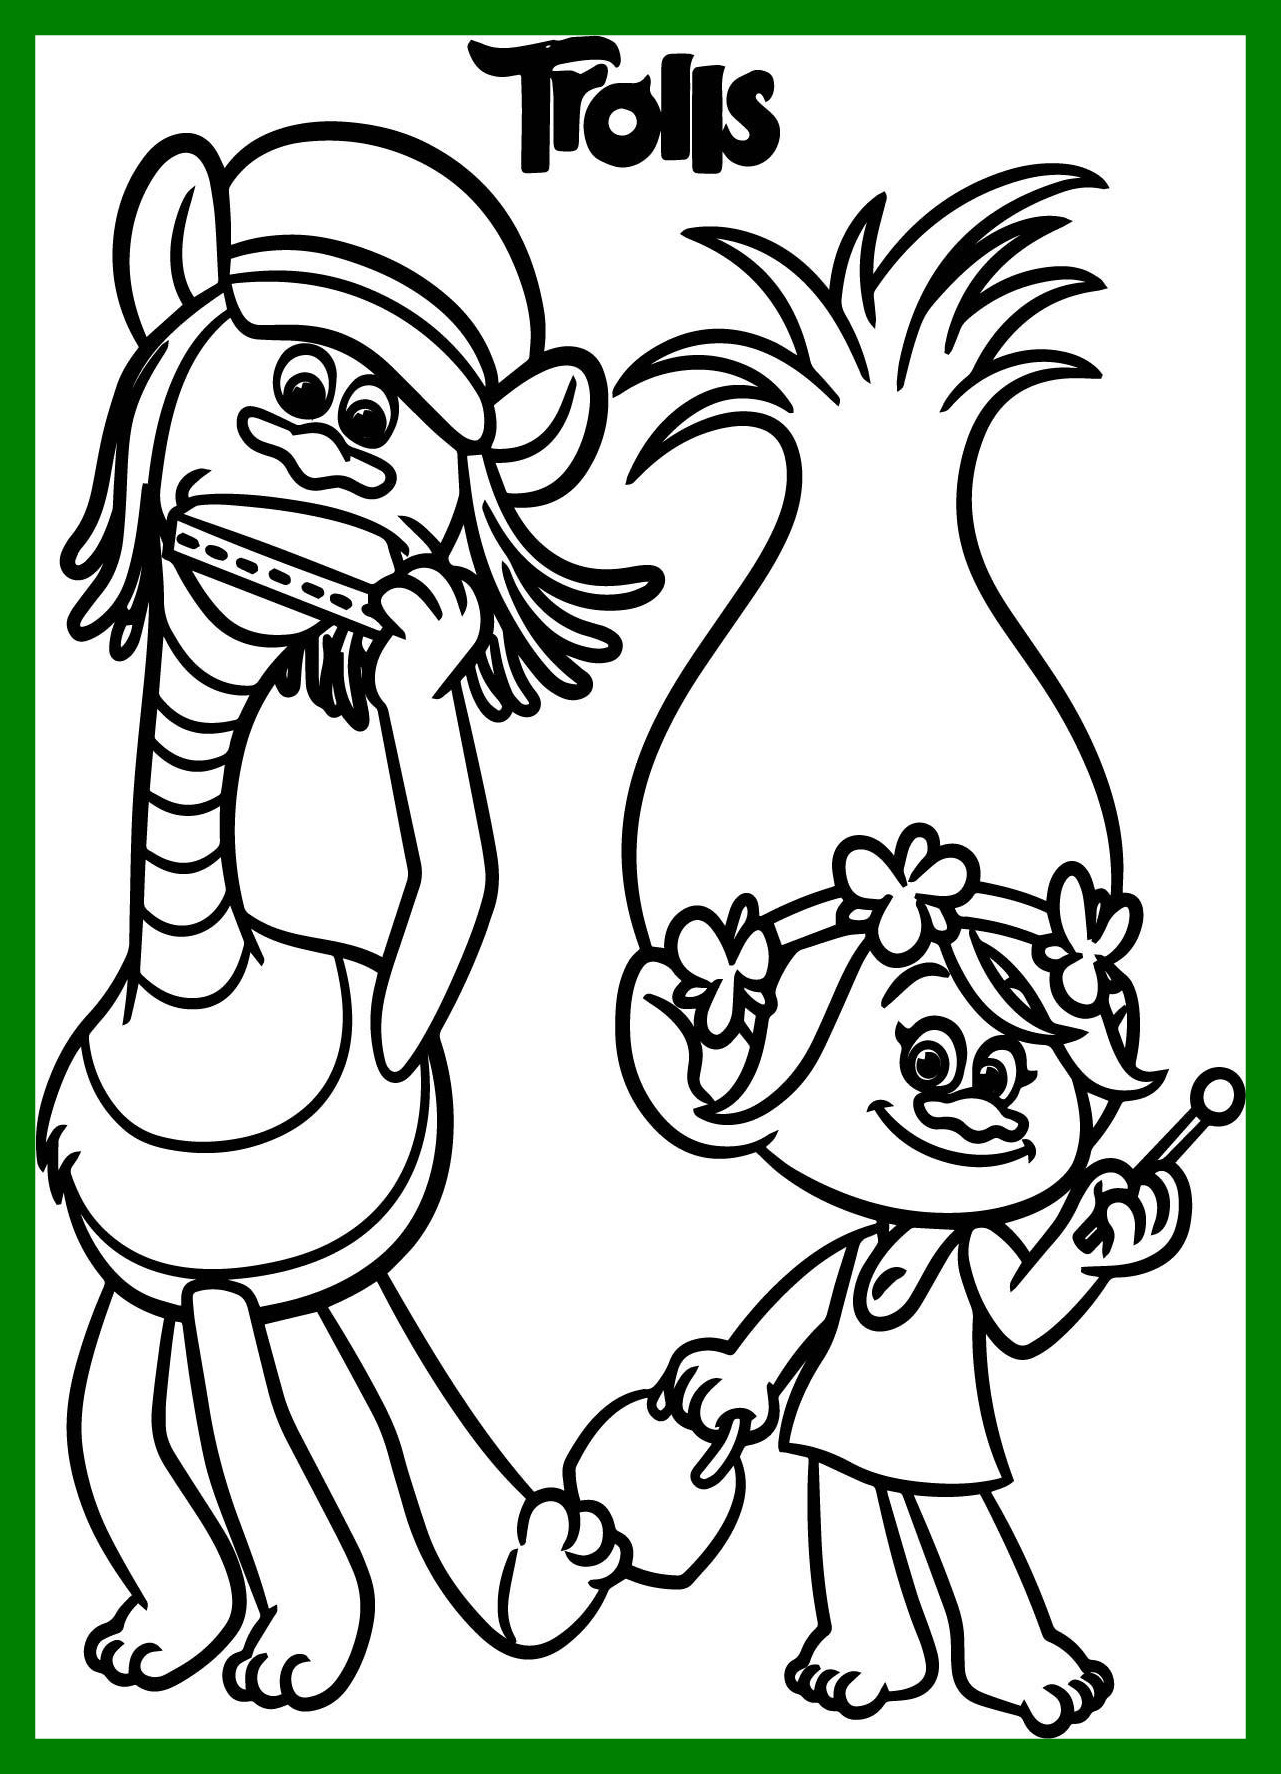 Dreamworks Trolls Coloring Pages at GetDrawings | Free ...